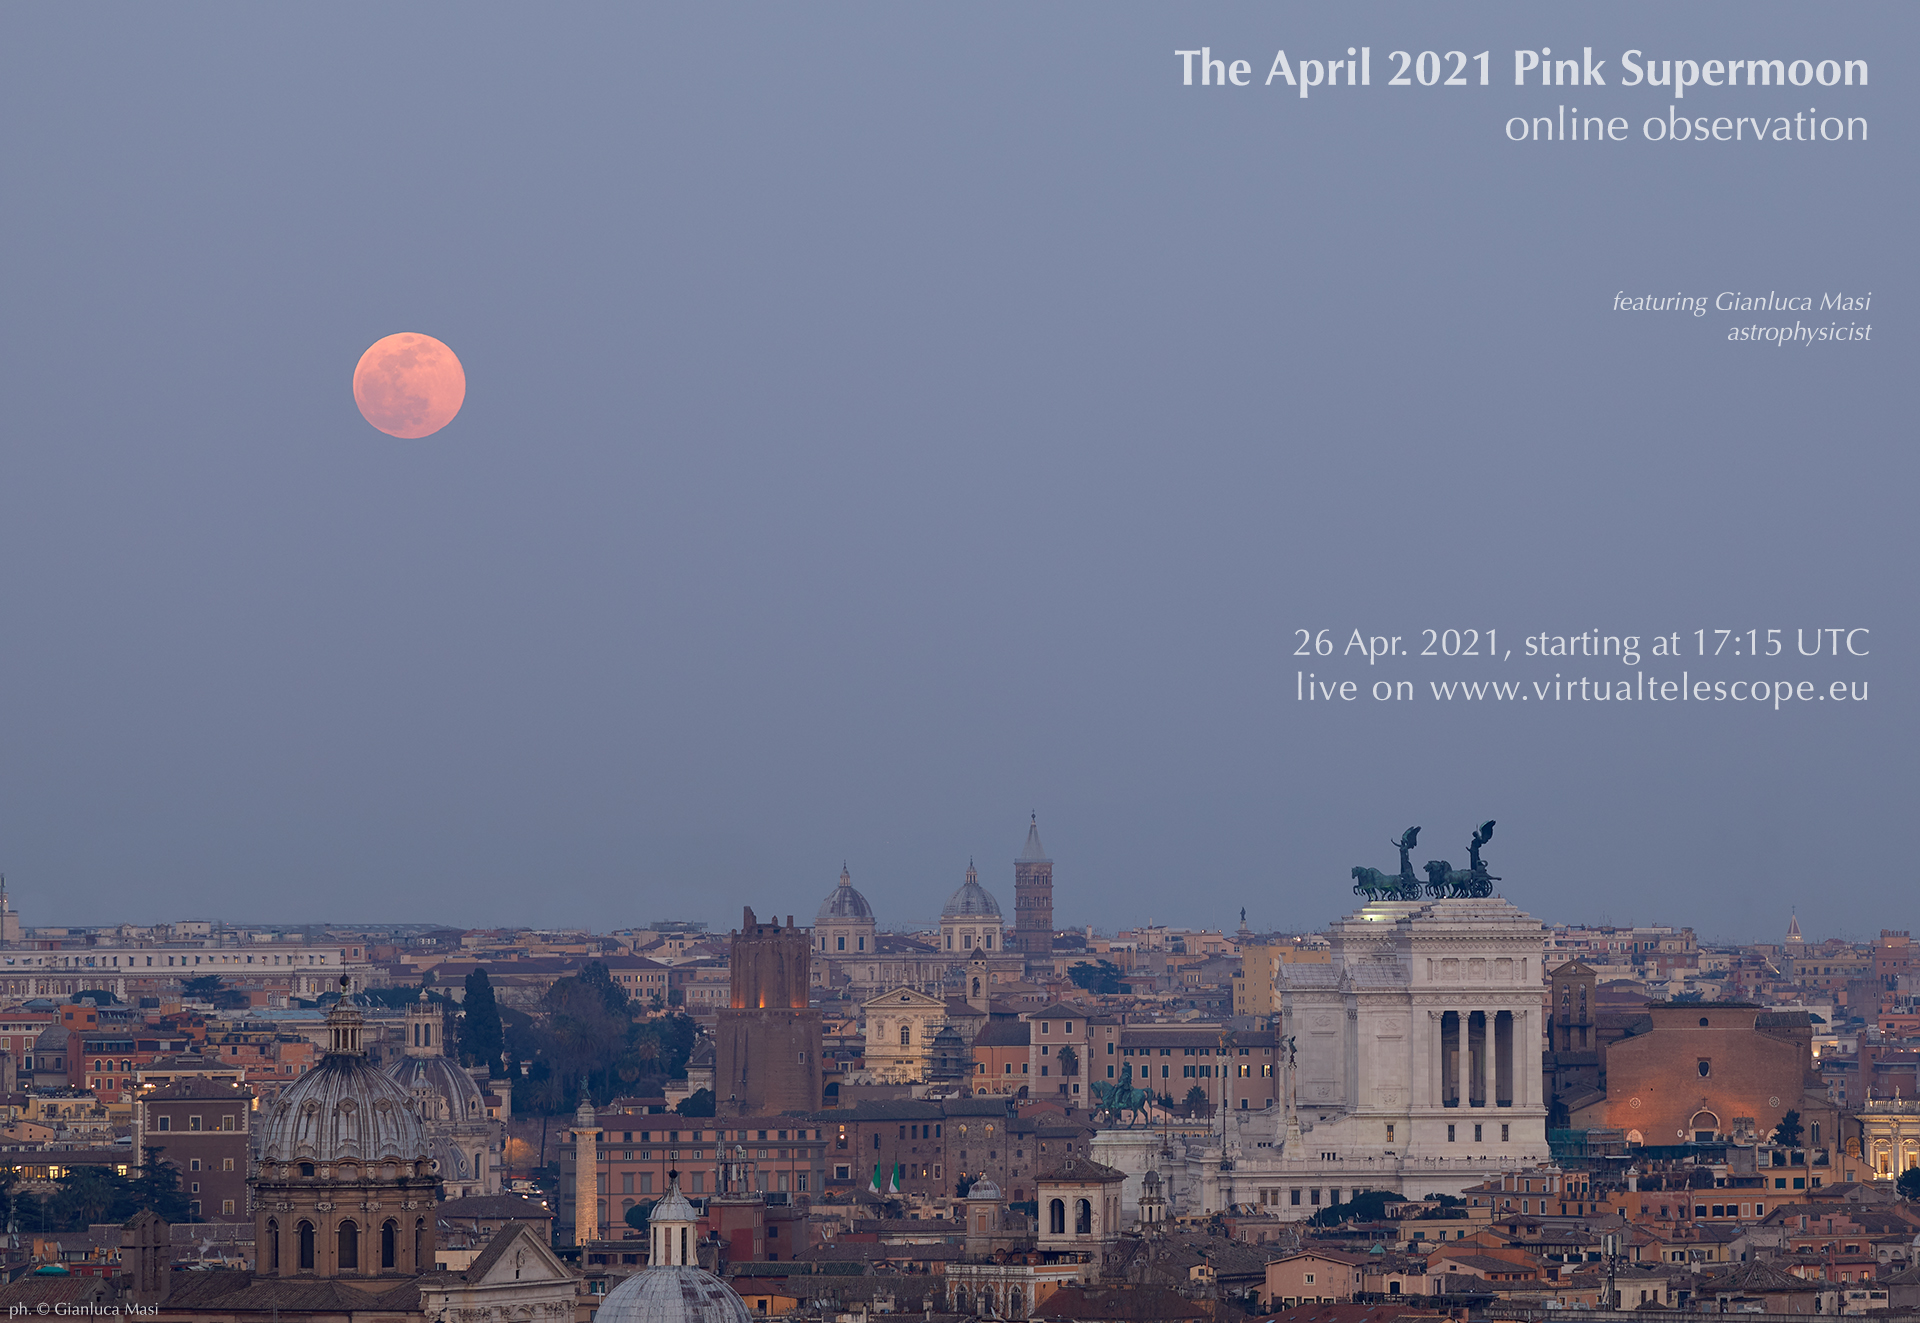 The April 2021 Flower Supermoon - poster of the event.